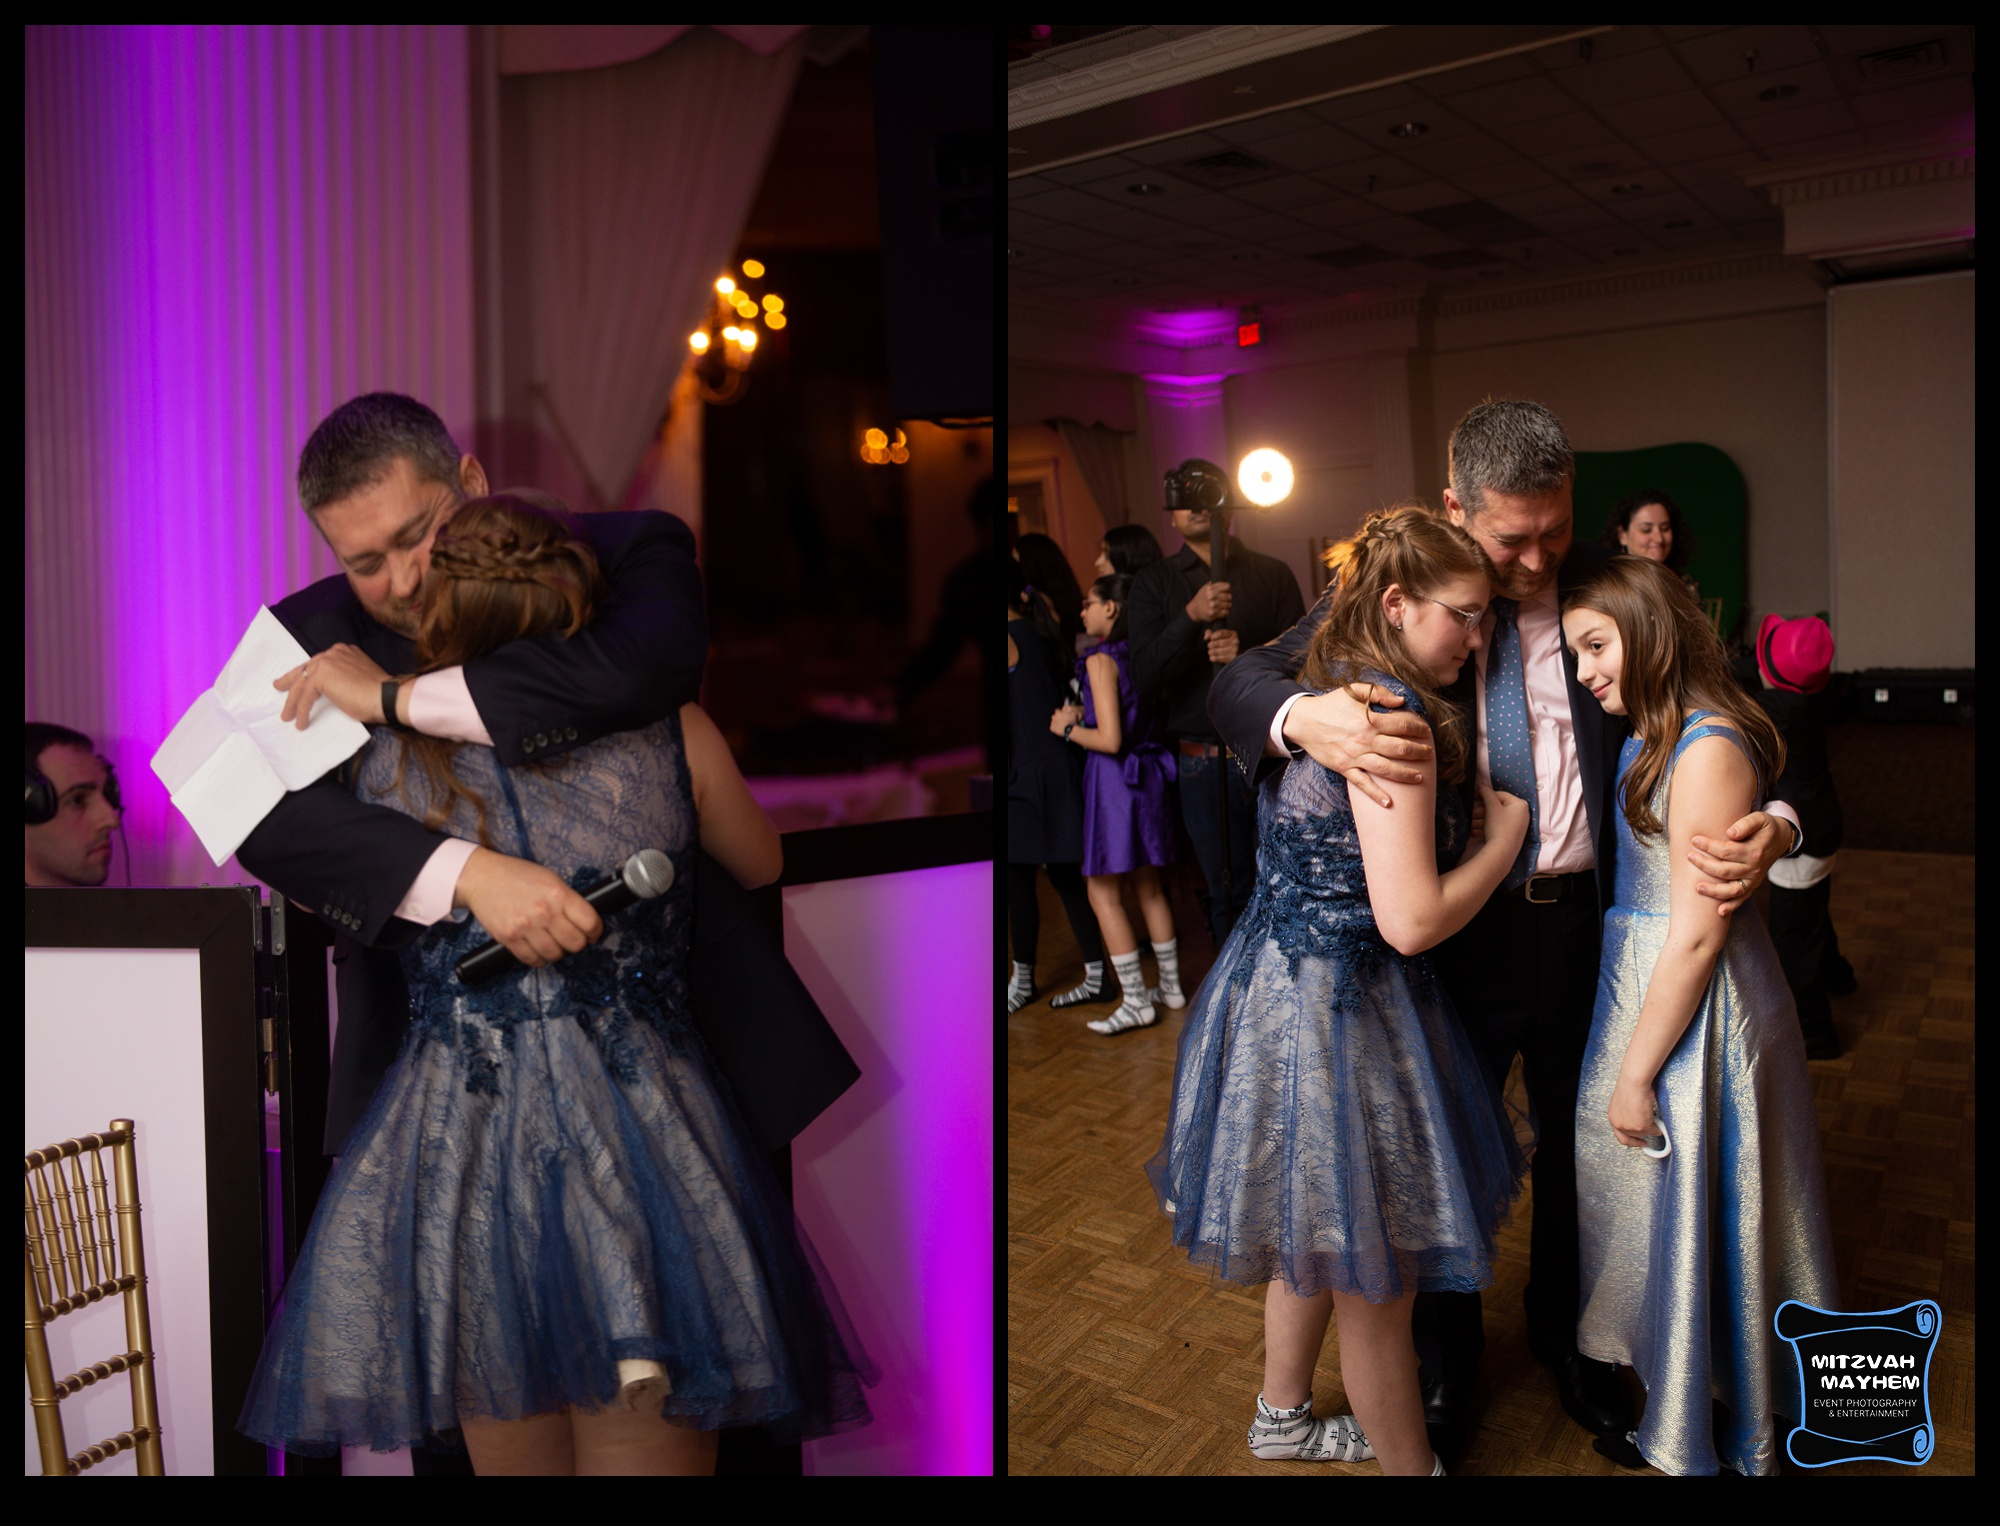 nj-bat-mitzvah-mayfair-farms-0308.JPG